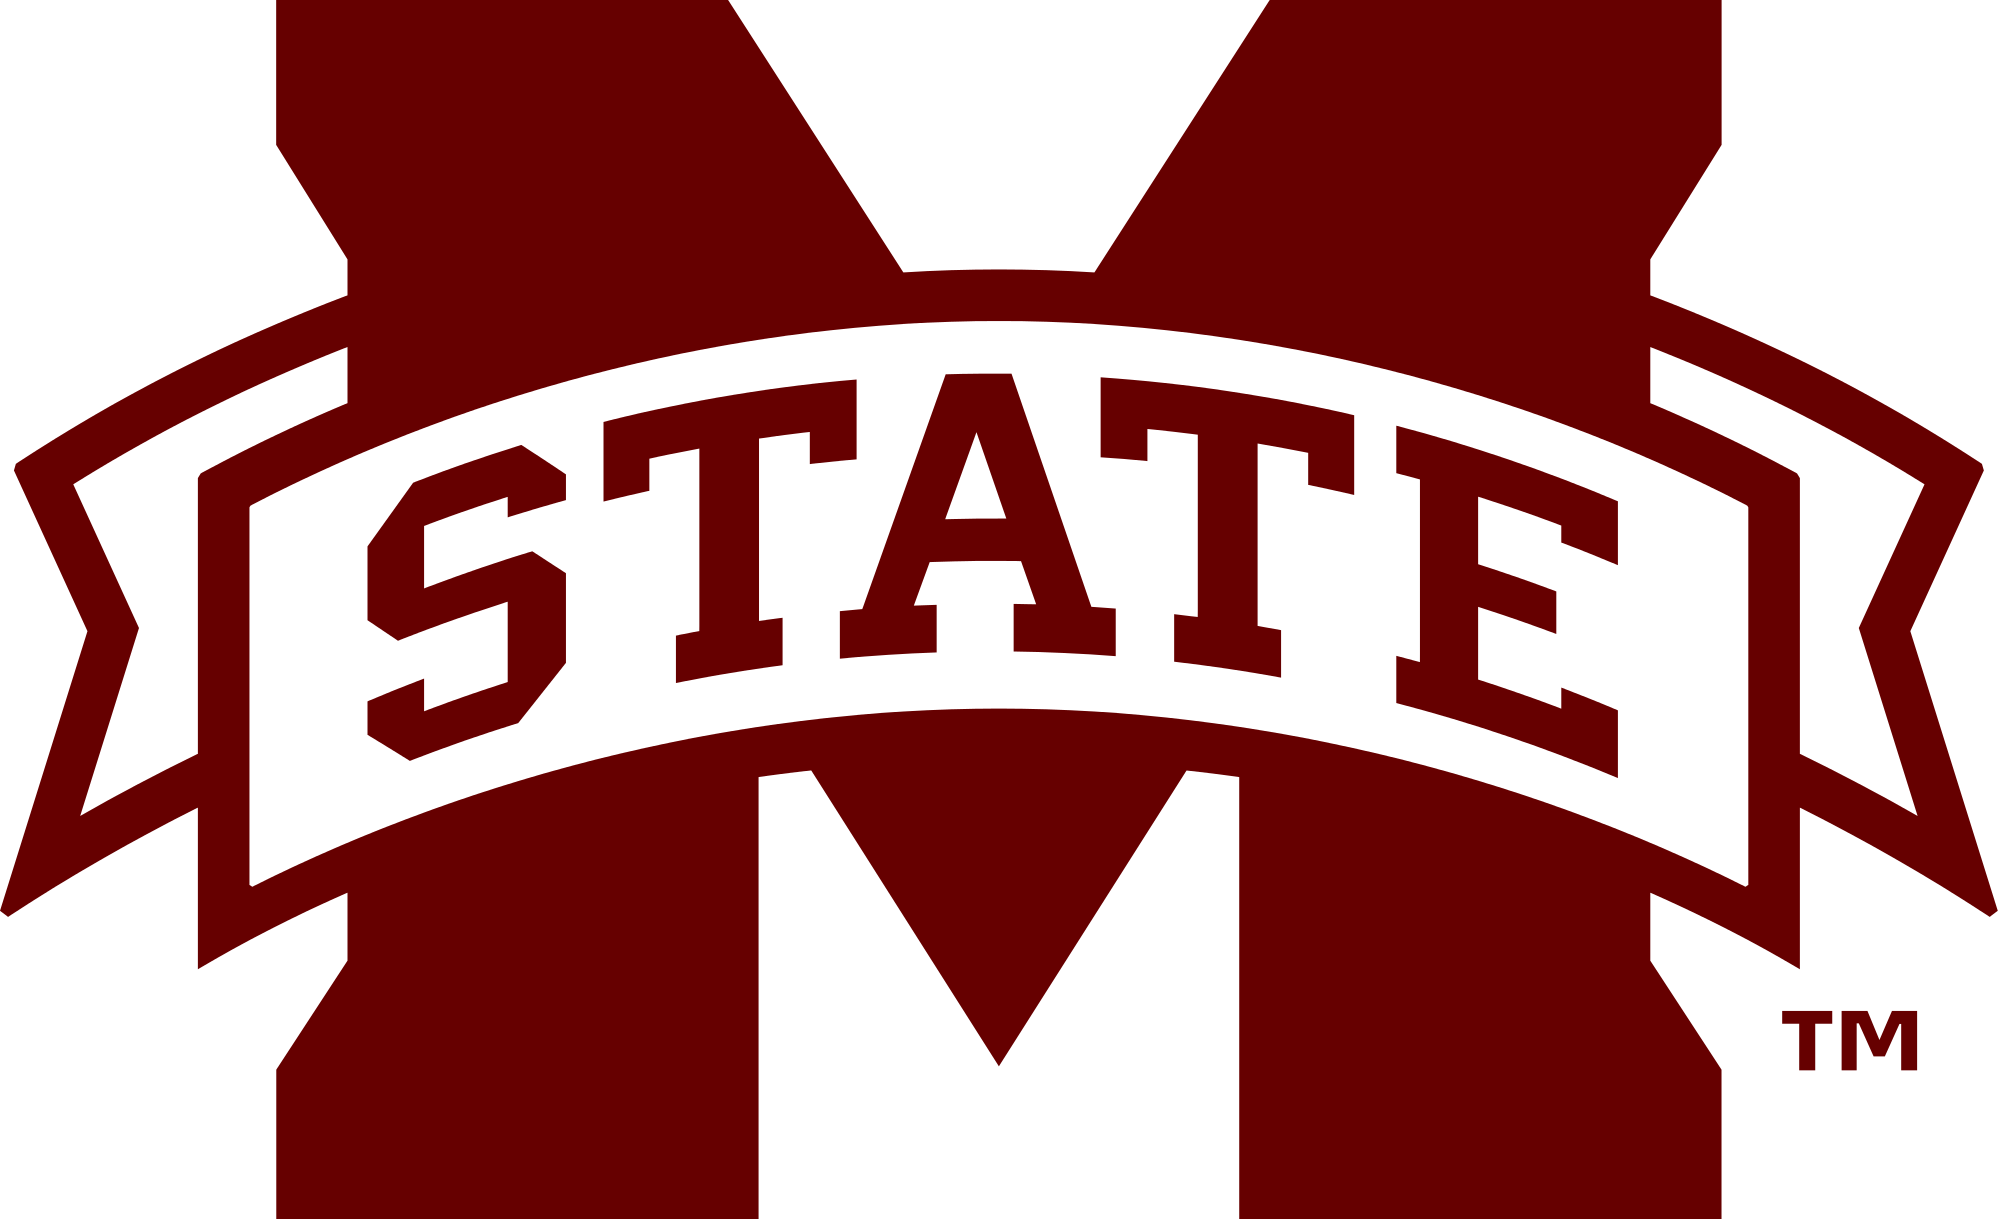 Ole miss football clipart vector royalty free stock Ole Miss-MSU Opener Washed Out - WCBI TV | Your News Leader vector royalty free stock